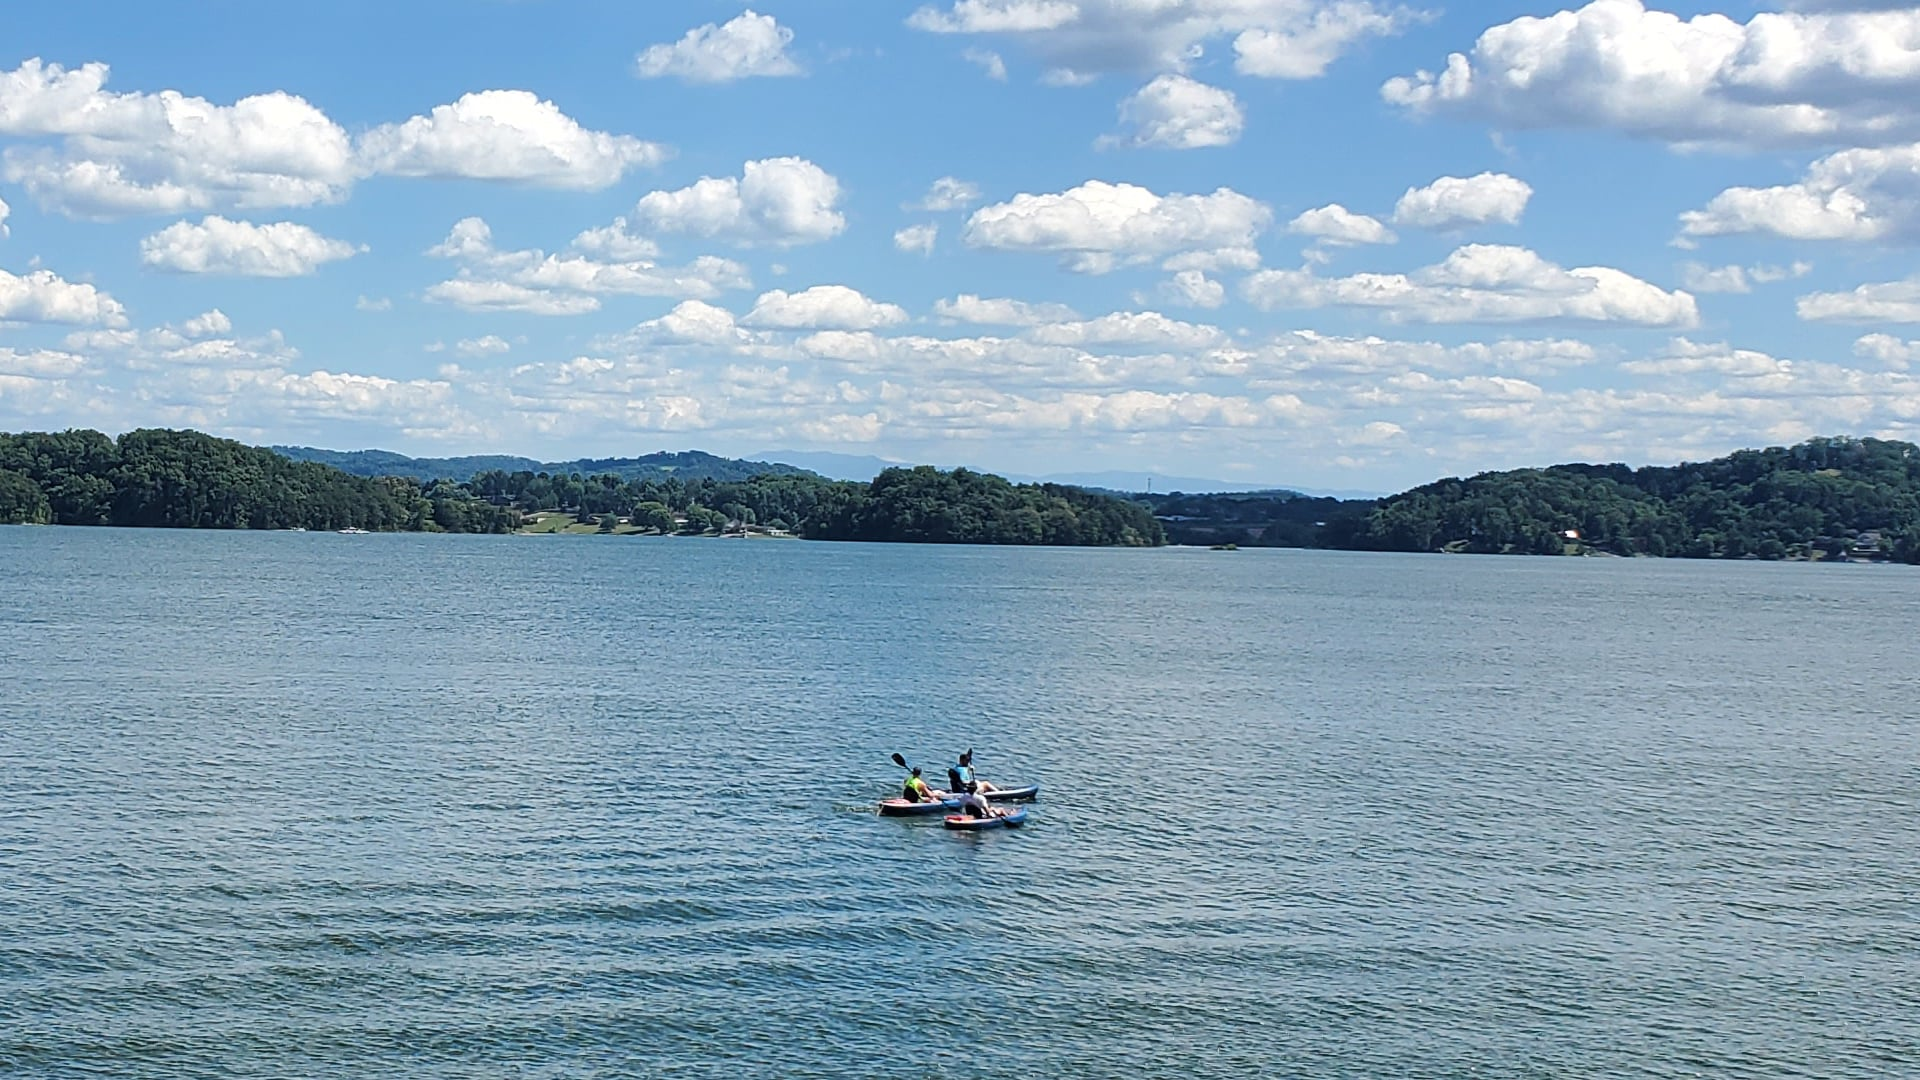 cherokee lake kayaking